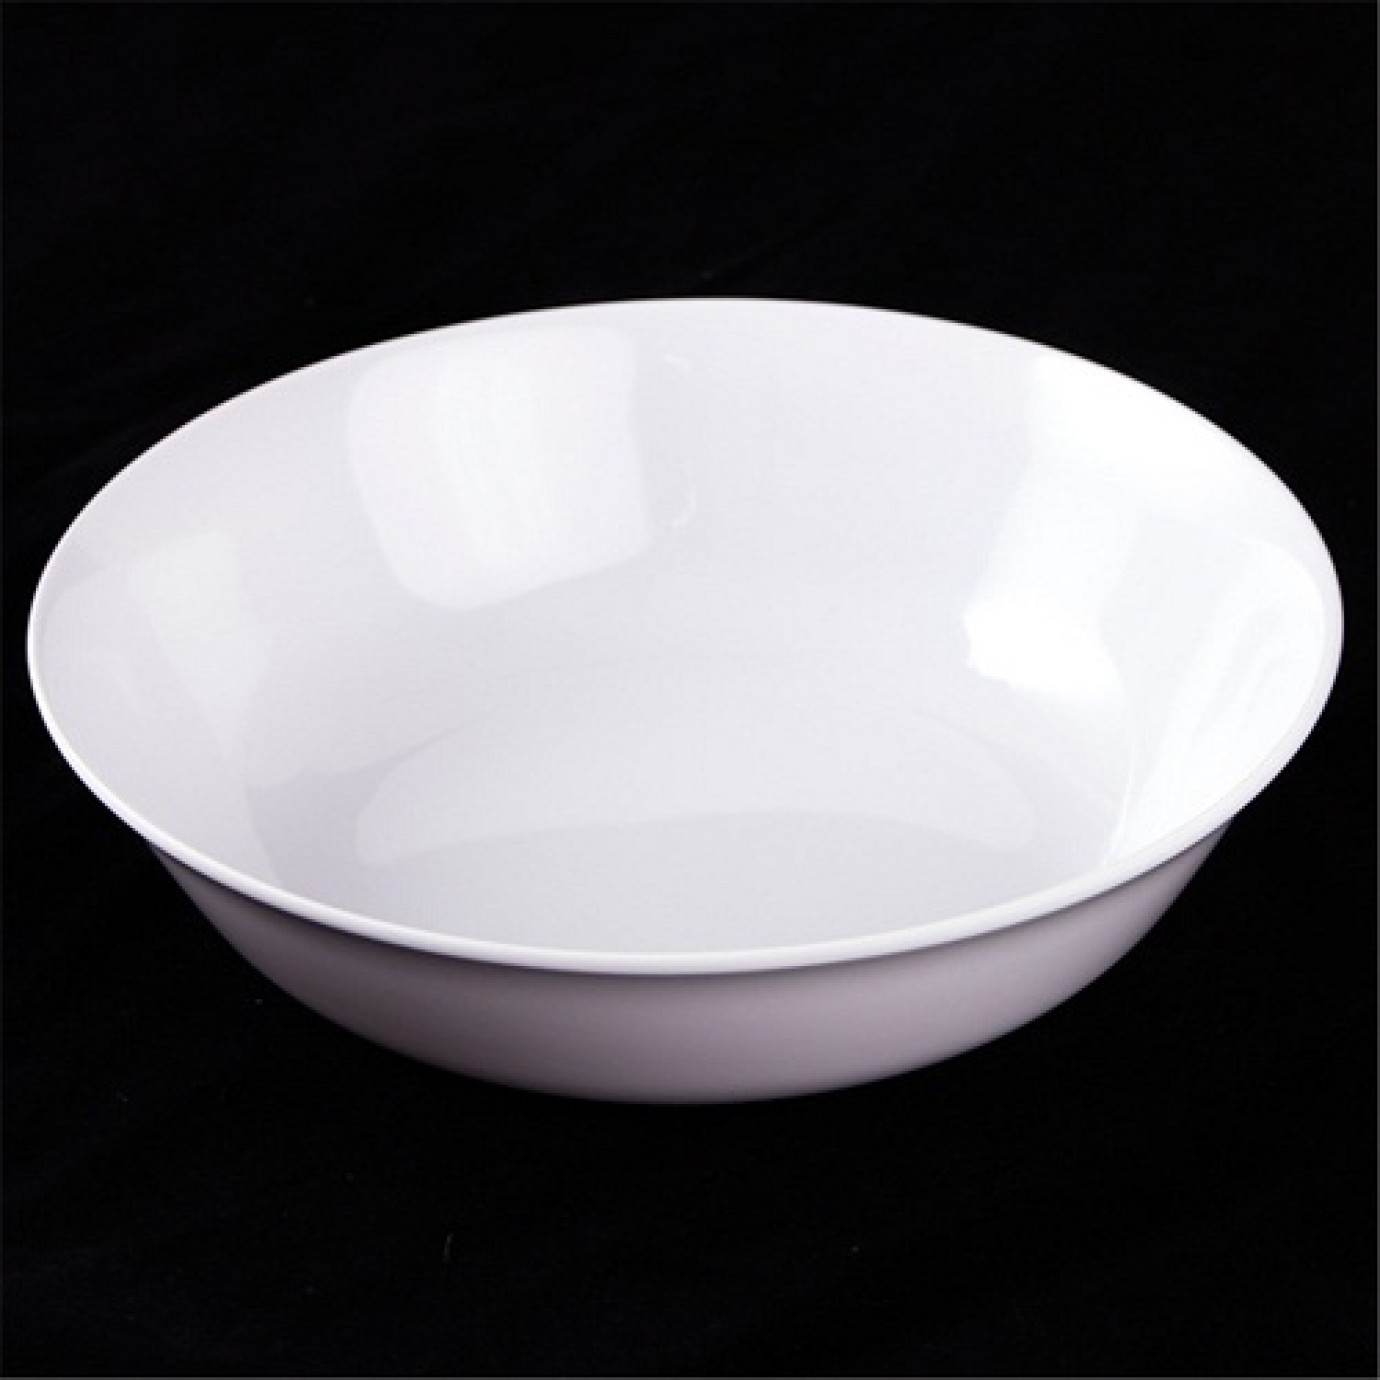 Bowl - Round White, Cereal | Bowls | Tableware | Party ...